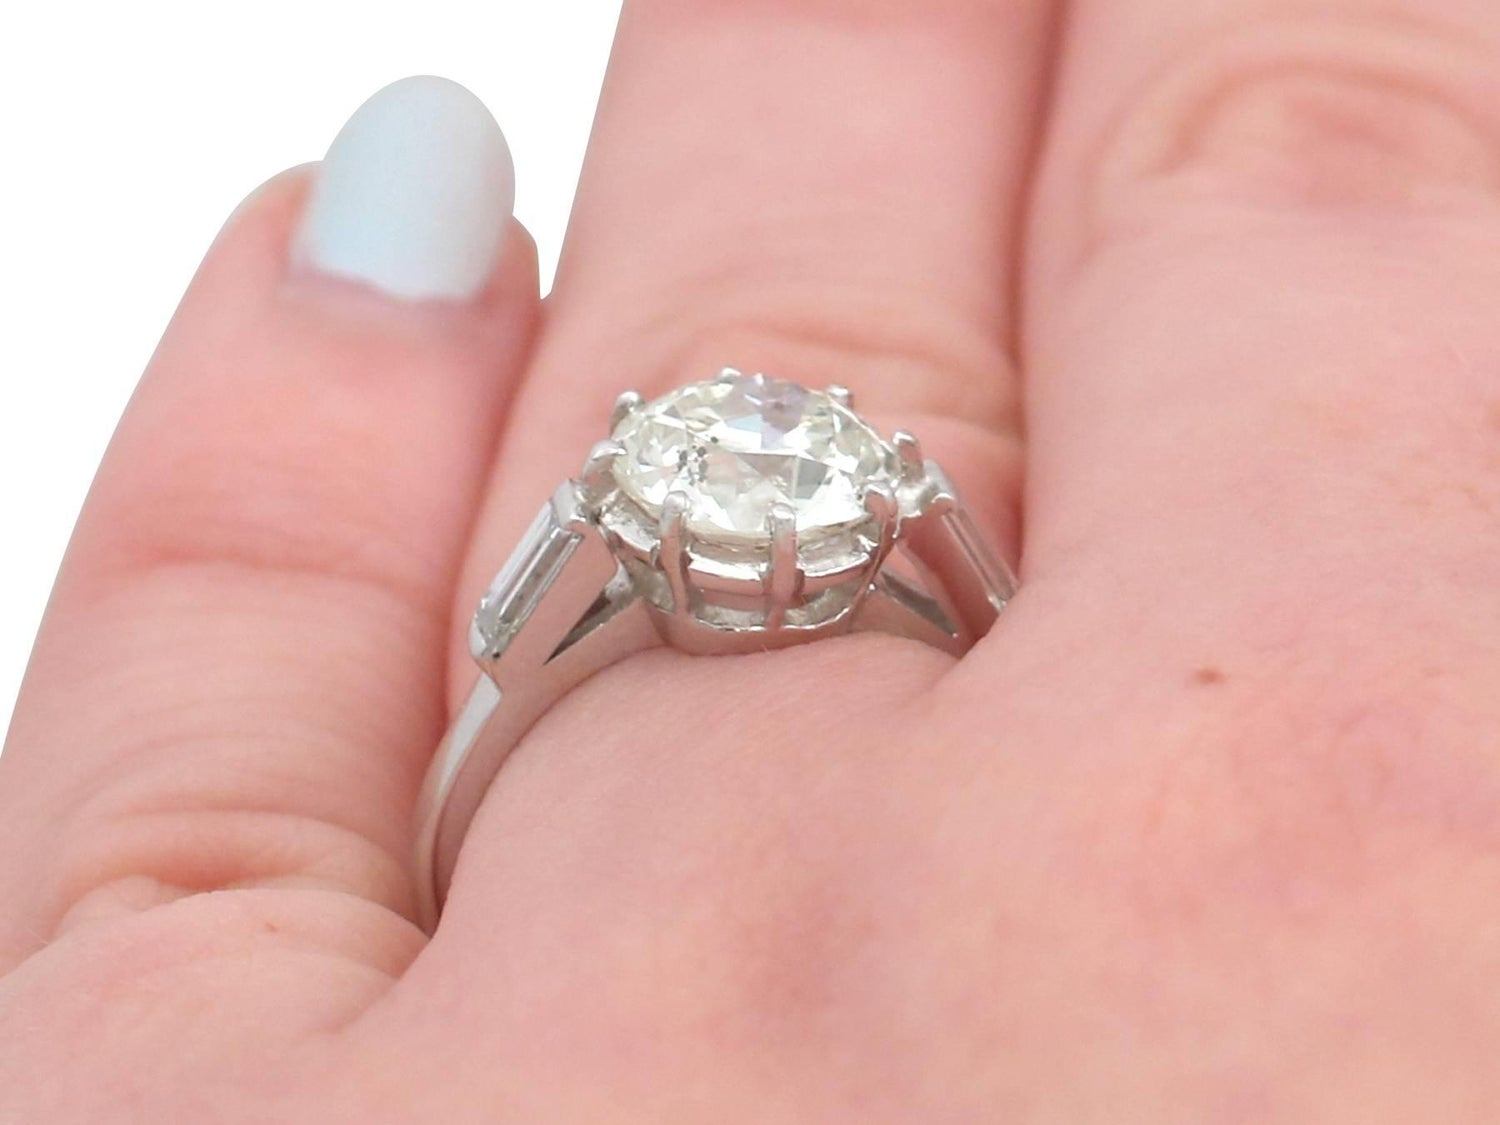 2.78 Carat Diamond and Platinum Solitaire Ring in Art Deco Style ...